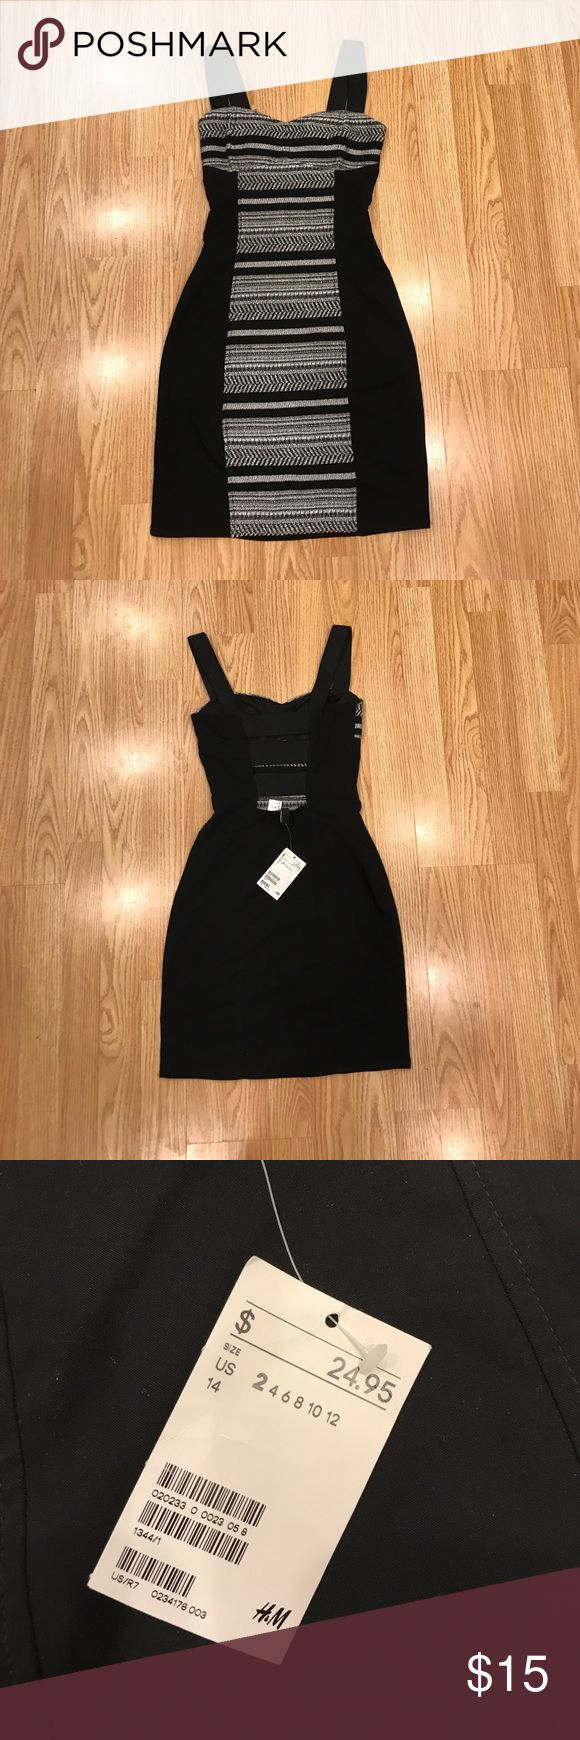 H&M bodycon dress New with tags. Black and white Aztec inspired print with strappy back. Stretch fabric H&M Dresses Mini